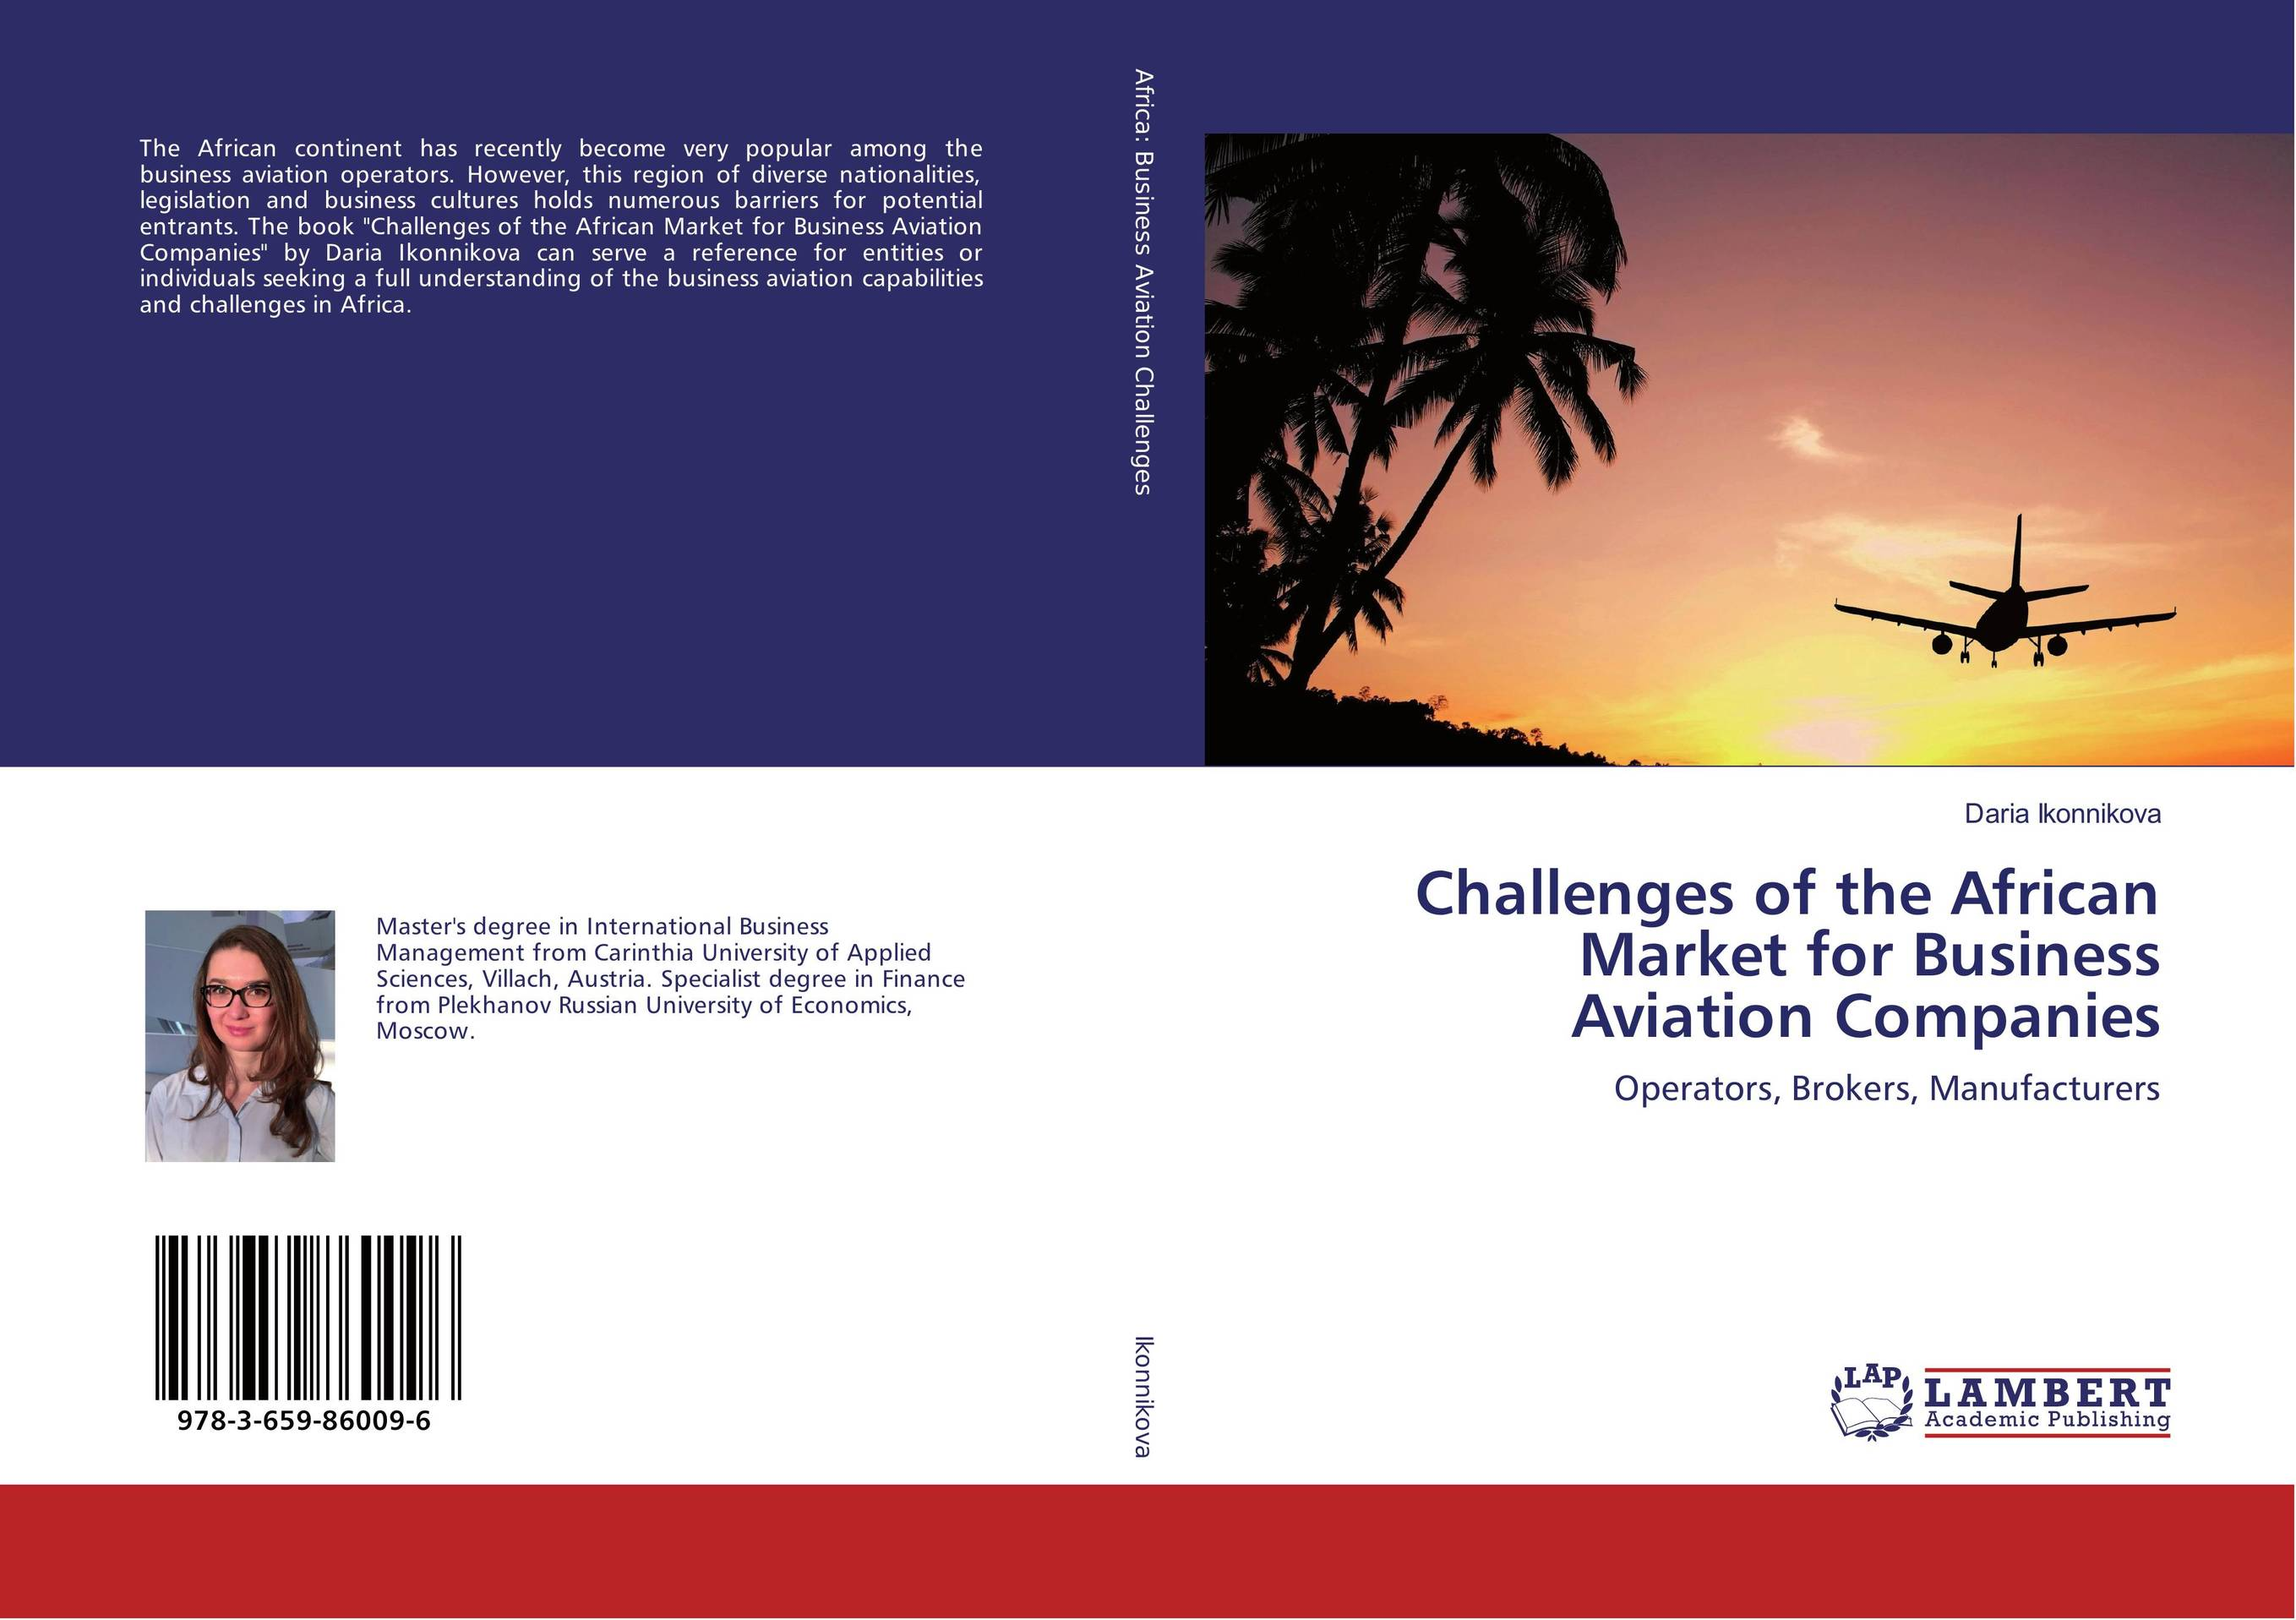 Challenges of the African Market for Business Aviation Companies mal airtac type mini cylinder mal25 275 stroke air cylinder mal25 275